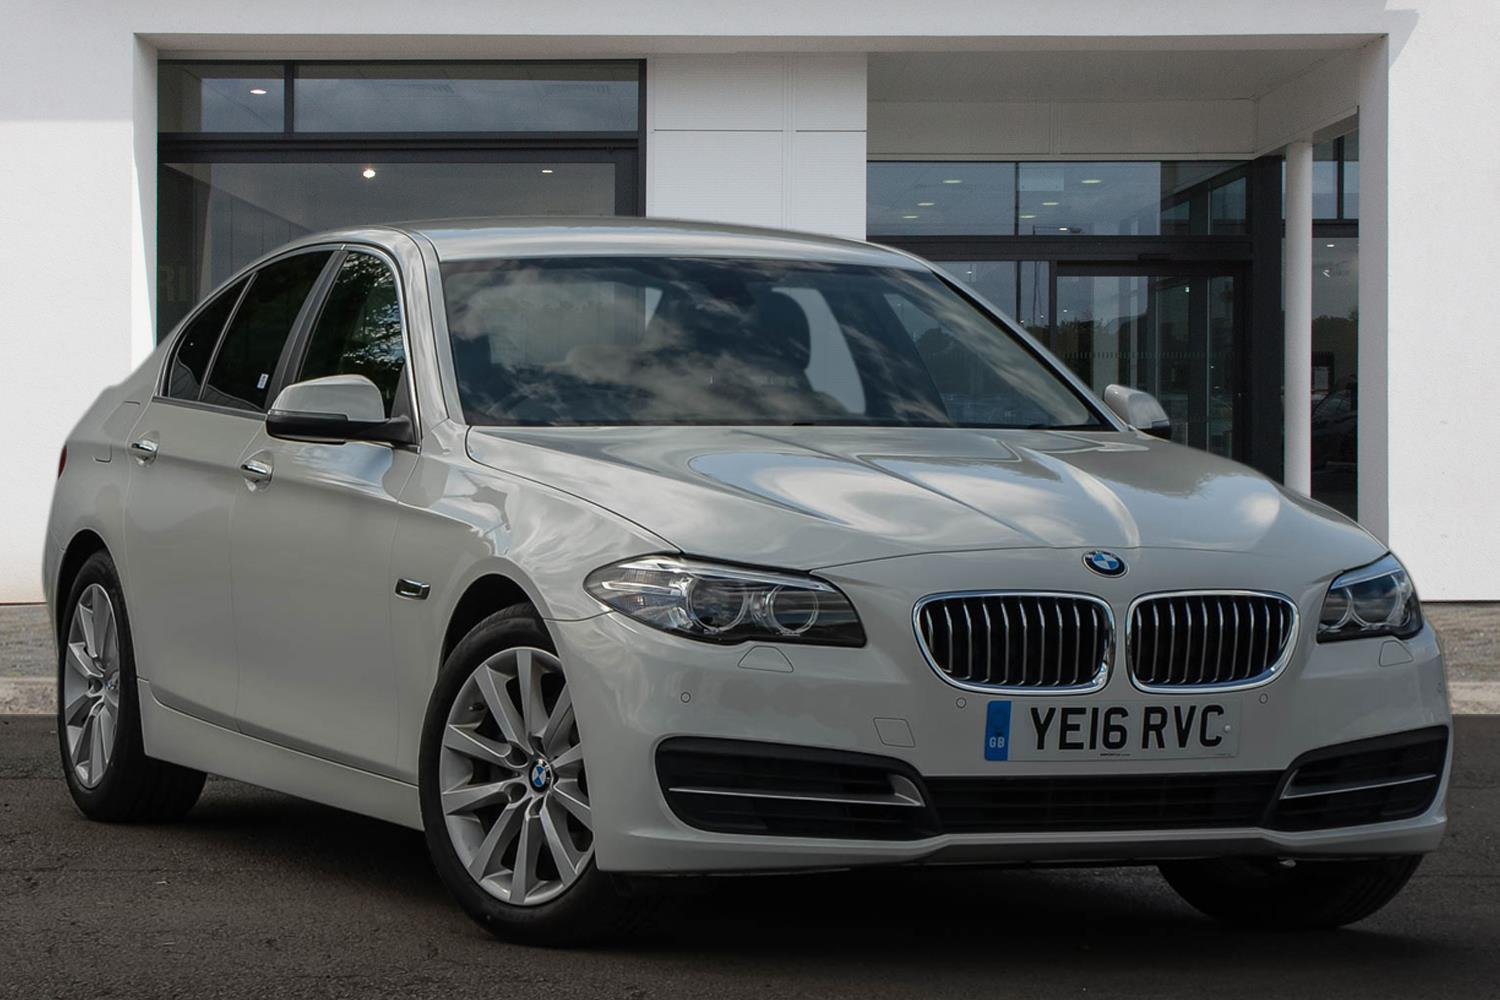 BMW 5 Series Saloon YE16RVC - Image 4